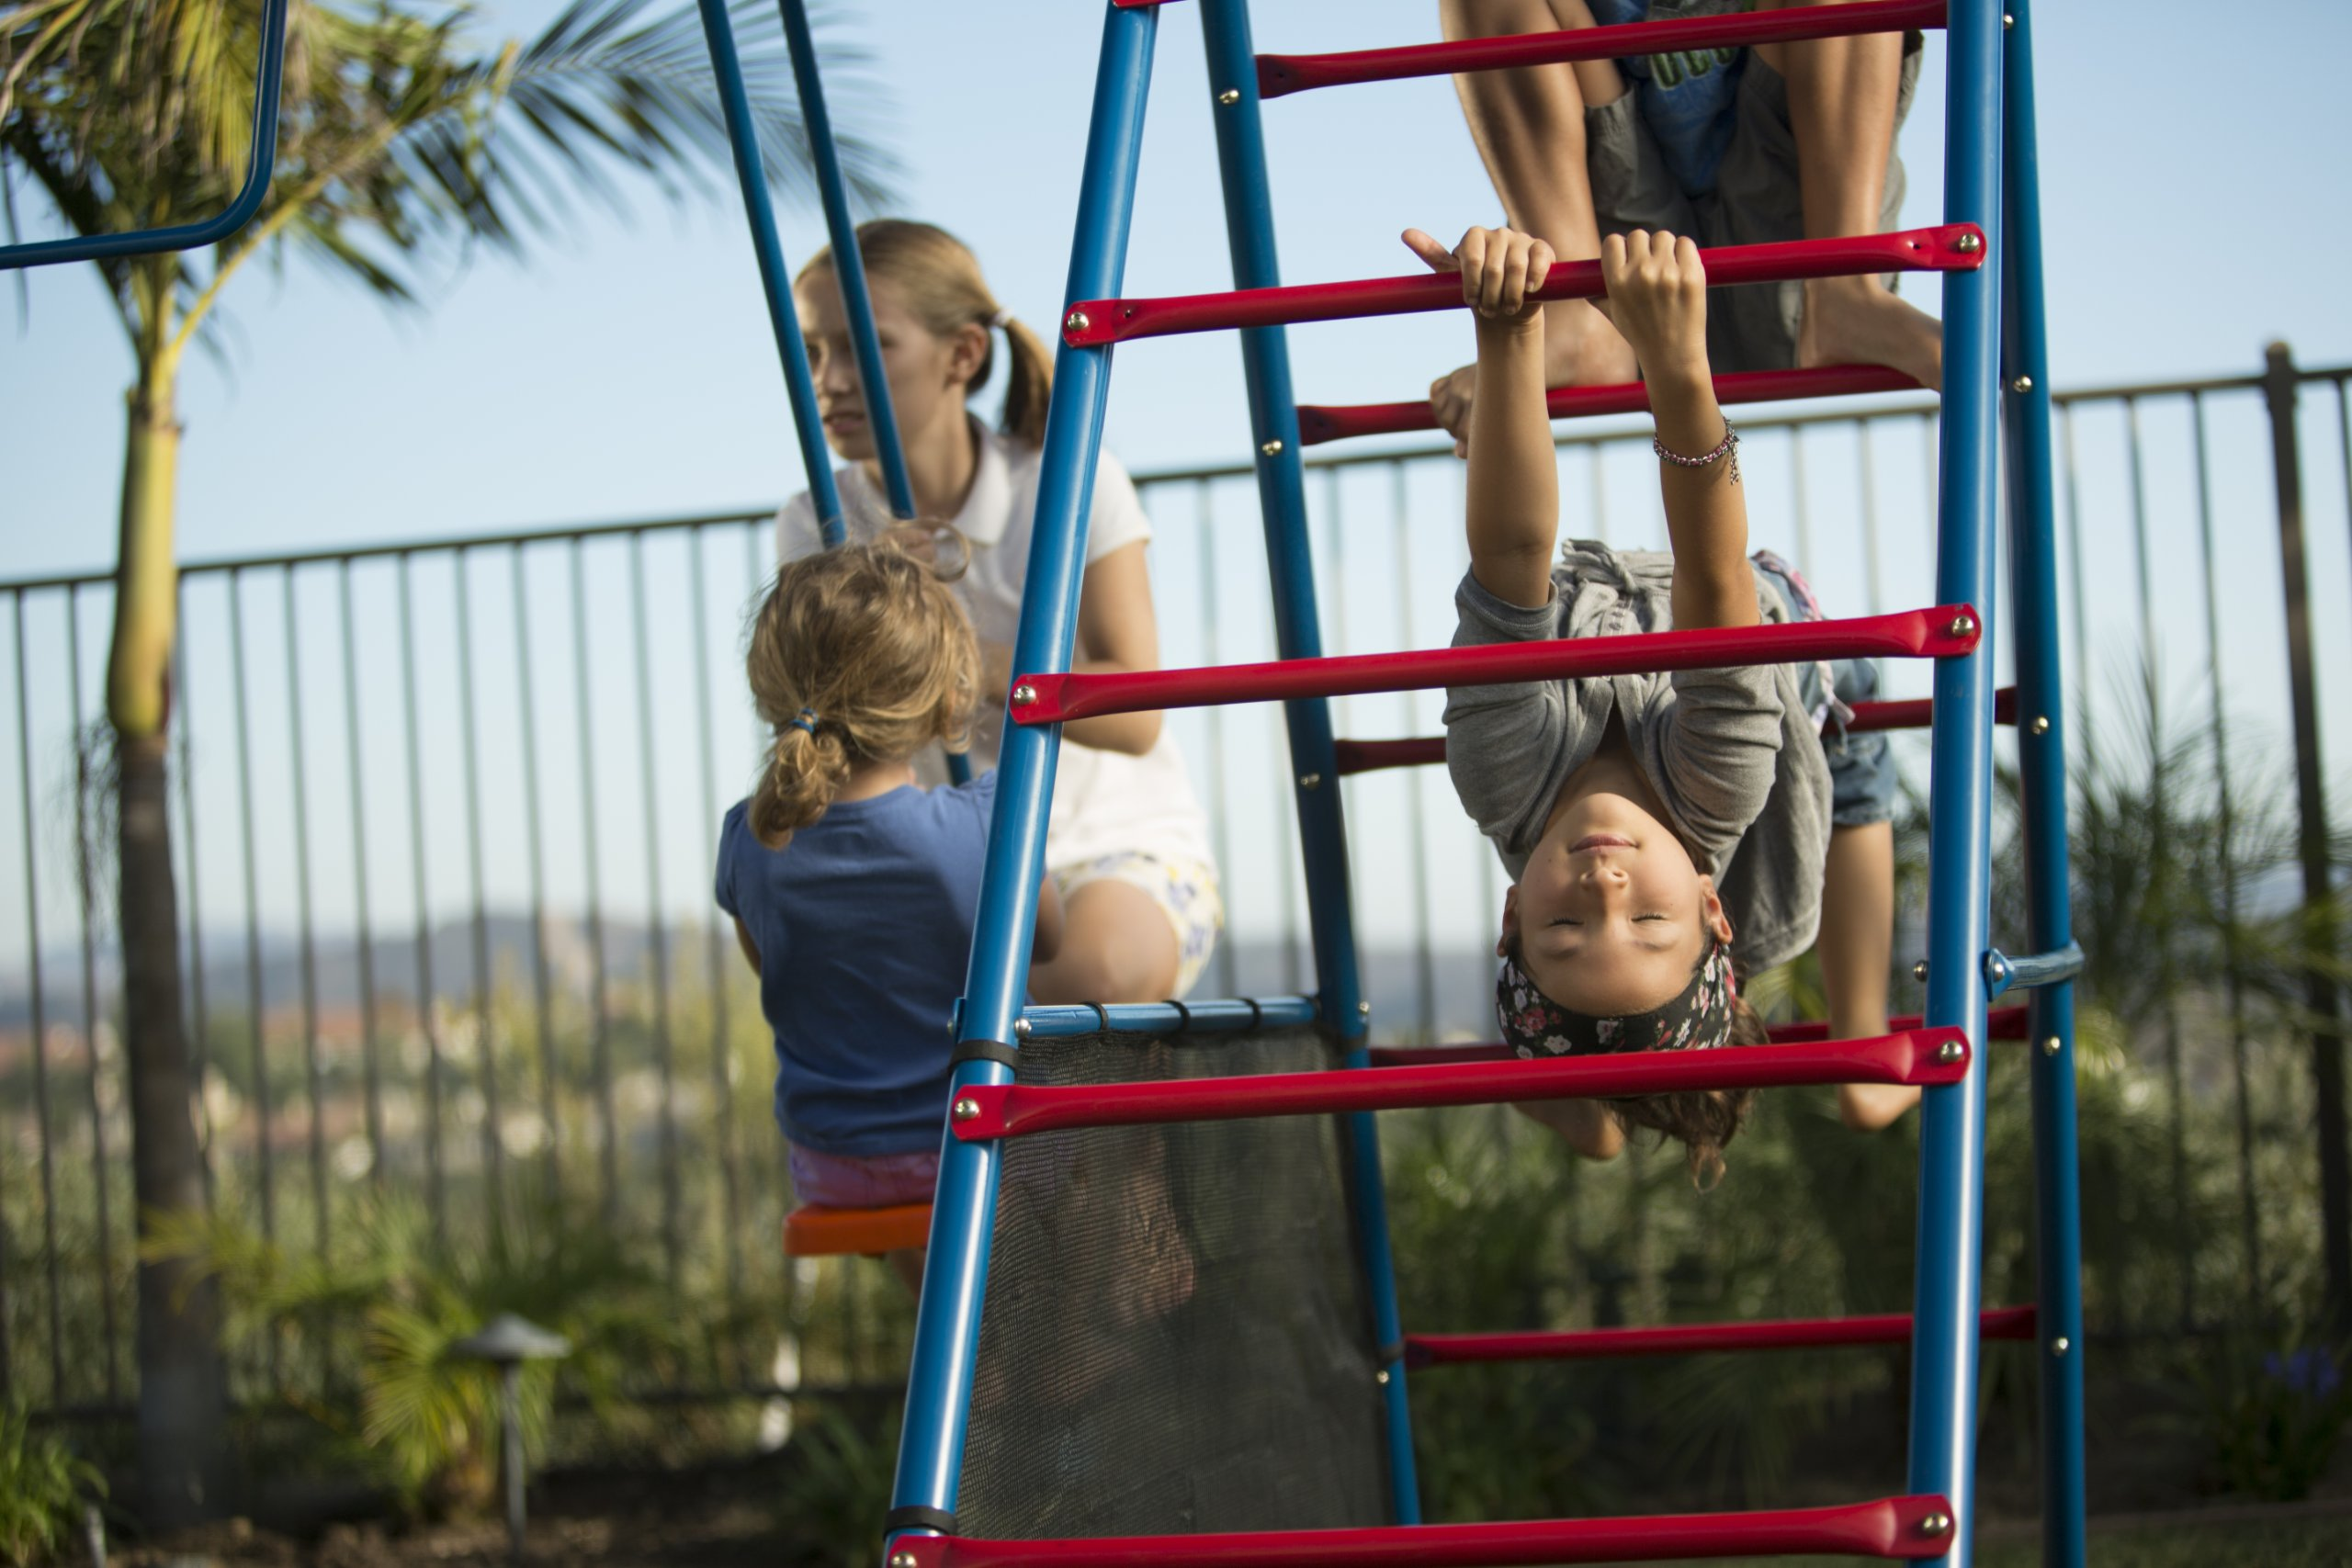 Ironkids Challenge 100 Metal Swing Set with Ladder Climber and UV Protective Sunshade by IRONKIDS (Image #6)